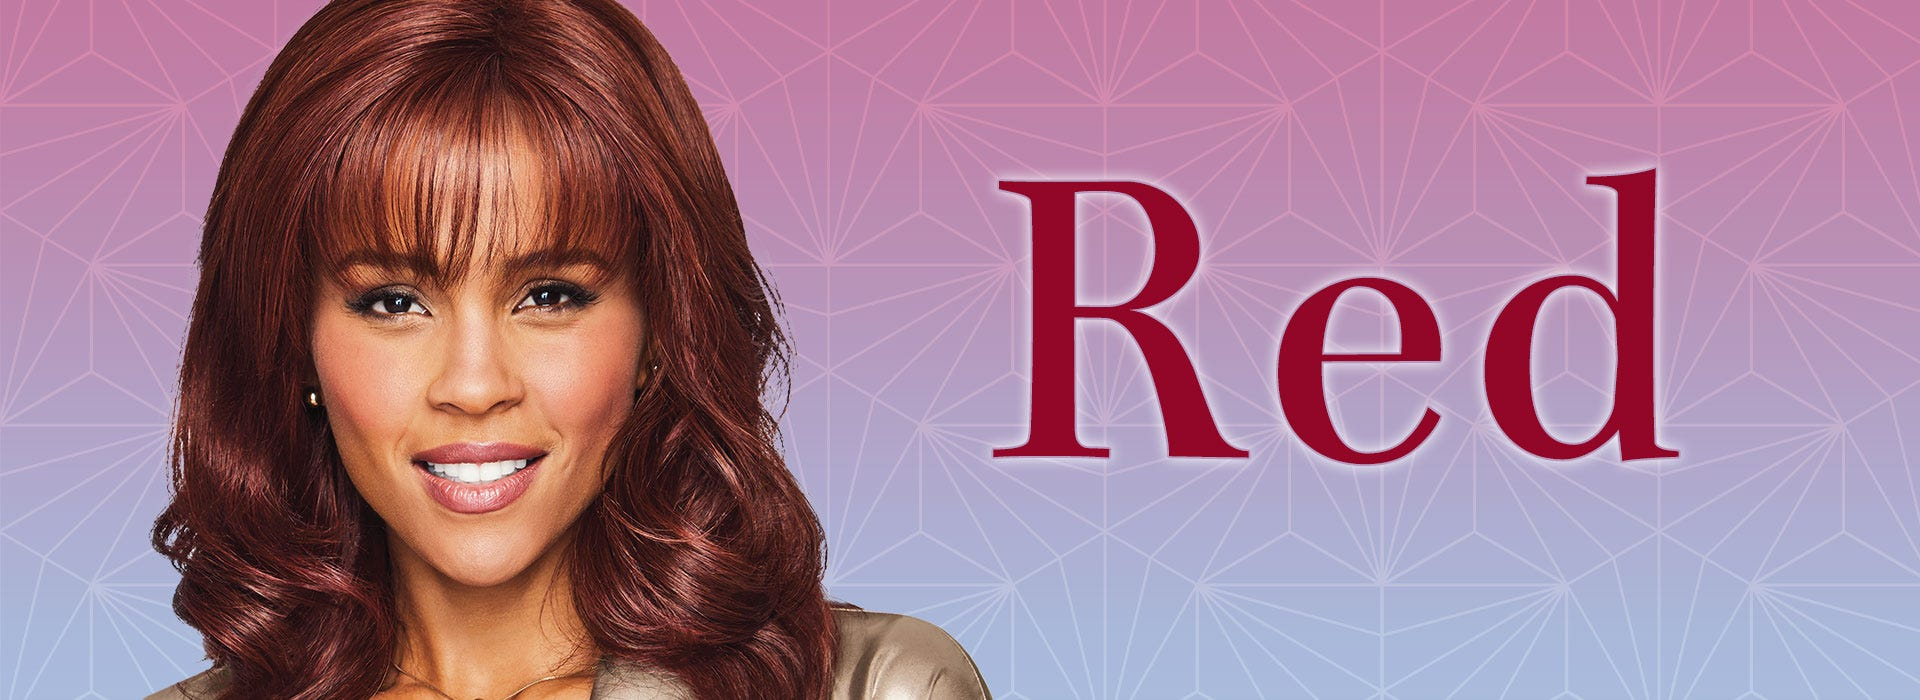 Red Wigs - Style Shown: Curve Appeal Lace Front Wig by Raquel Welch in RL33-35 (Deepest Ruby)